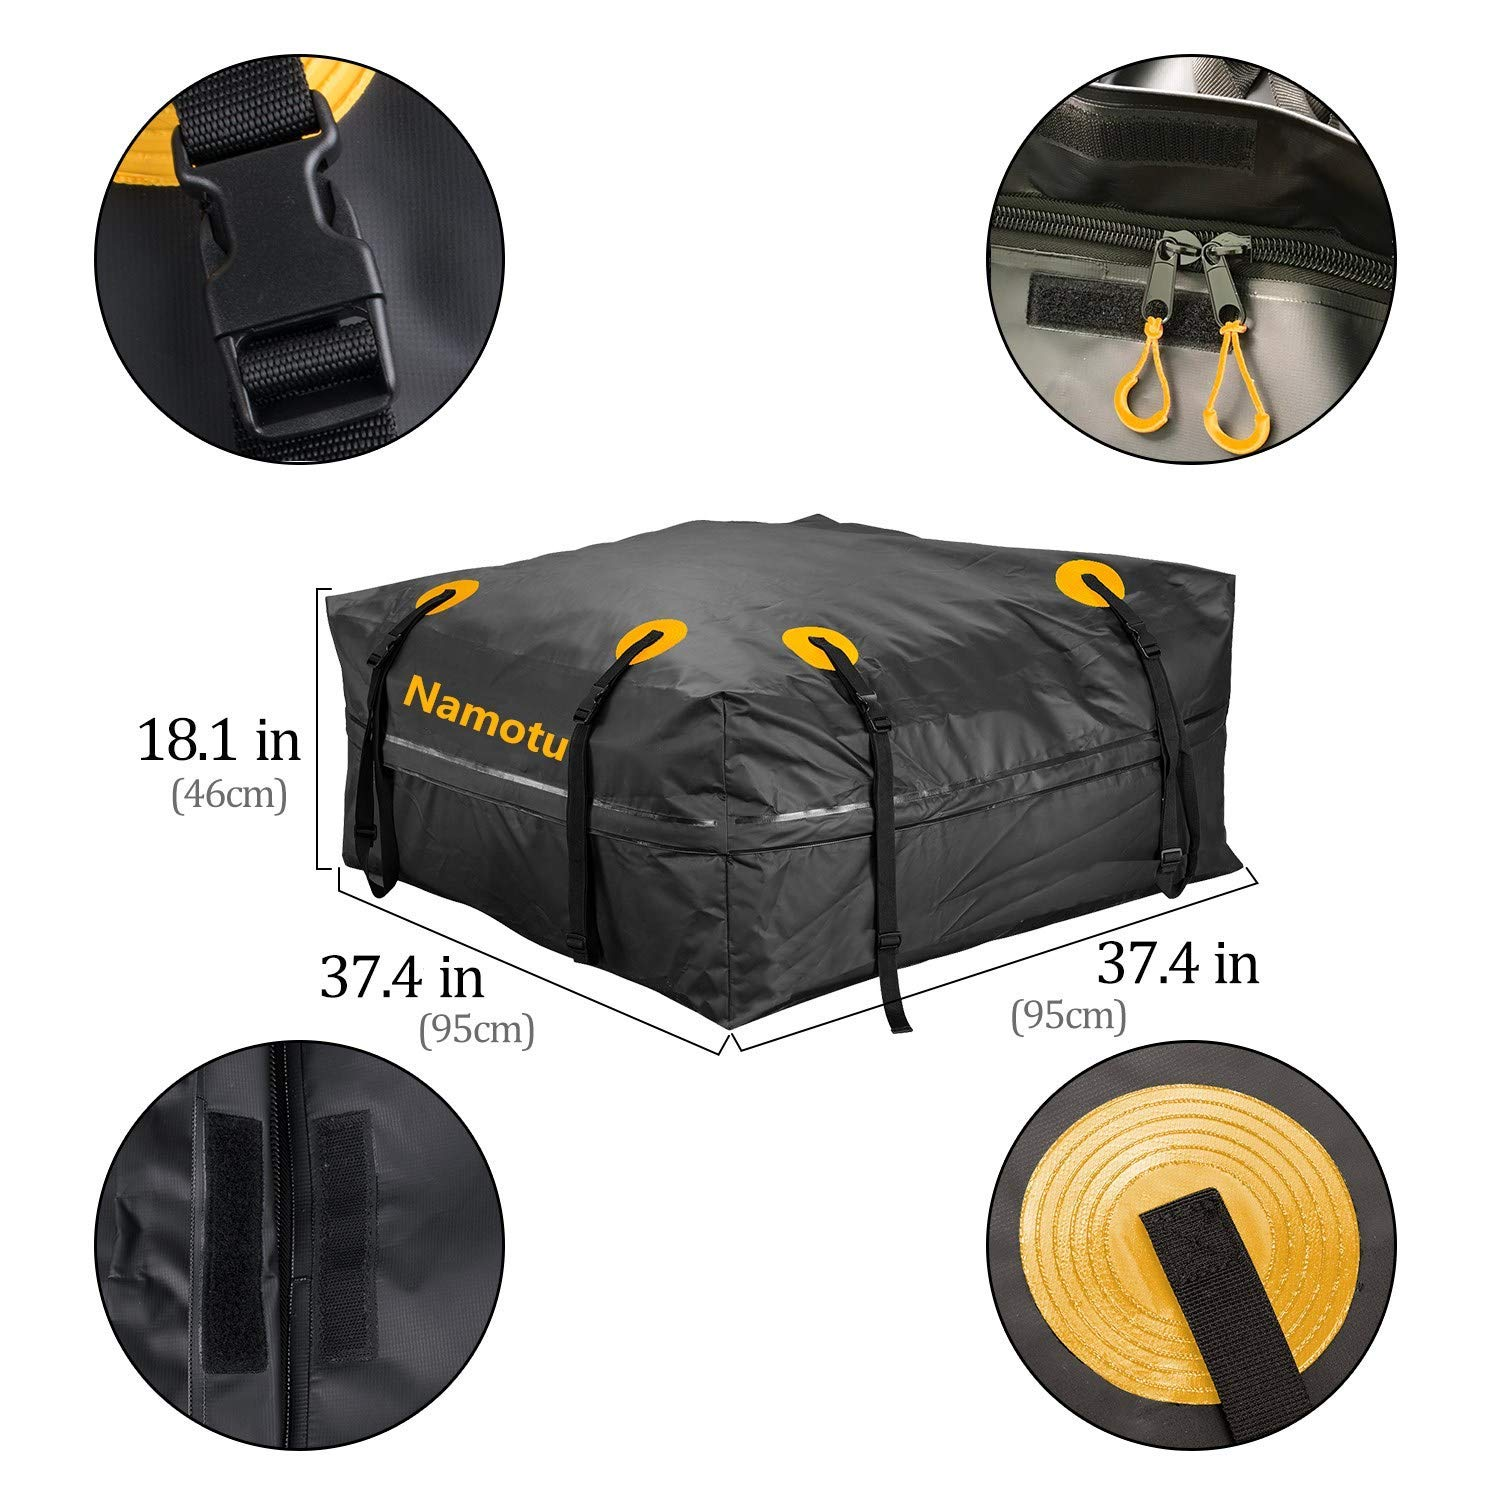 Upgraded Version Namotu Waterproof Rooftop Cargo Carrie Bag 15 Cubic Feet Roof Top Cargo Bag with 8 X 1ft Tie Straps Fits All Cars with Rack